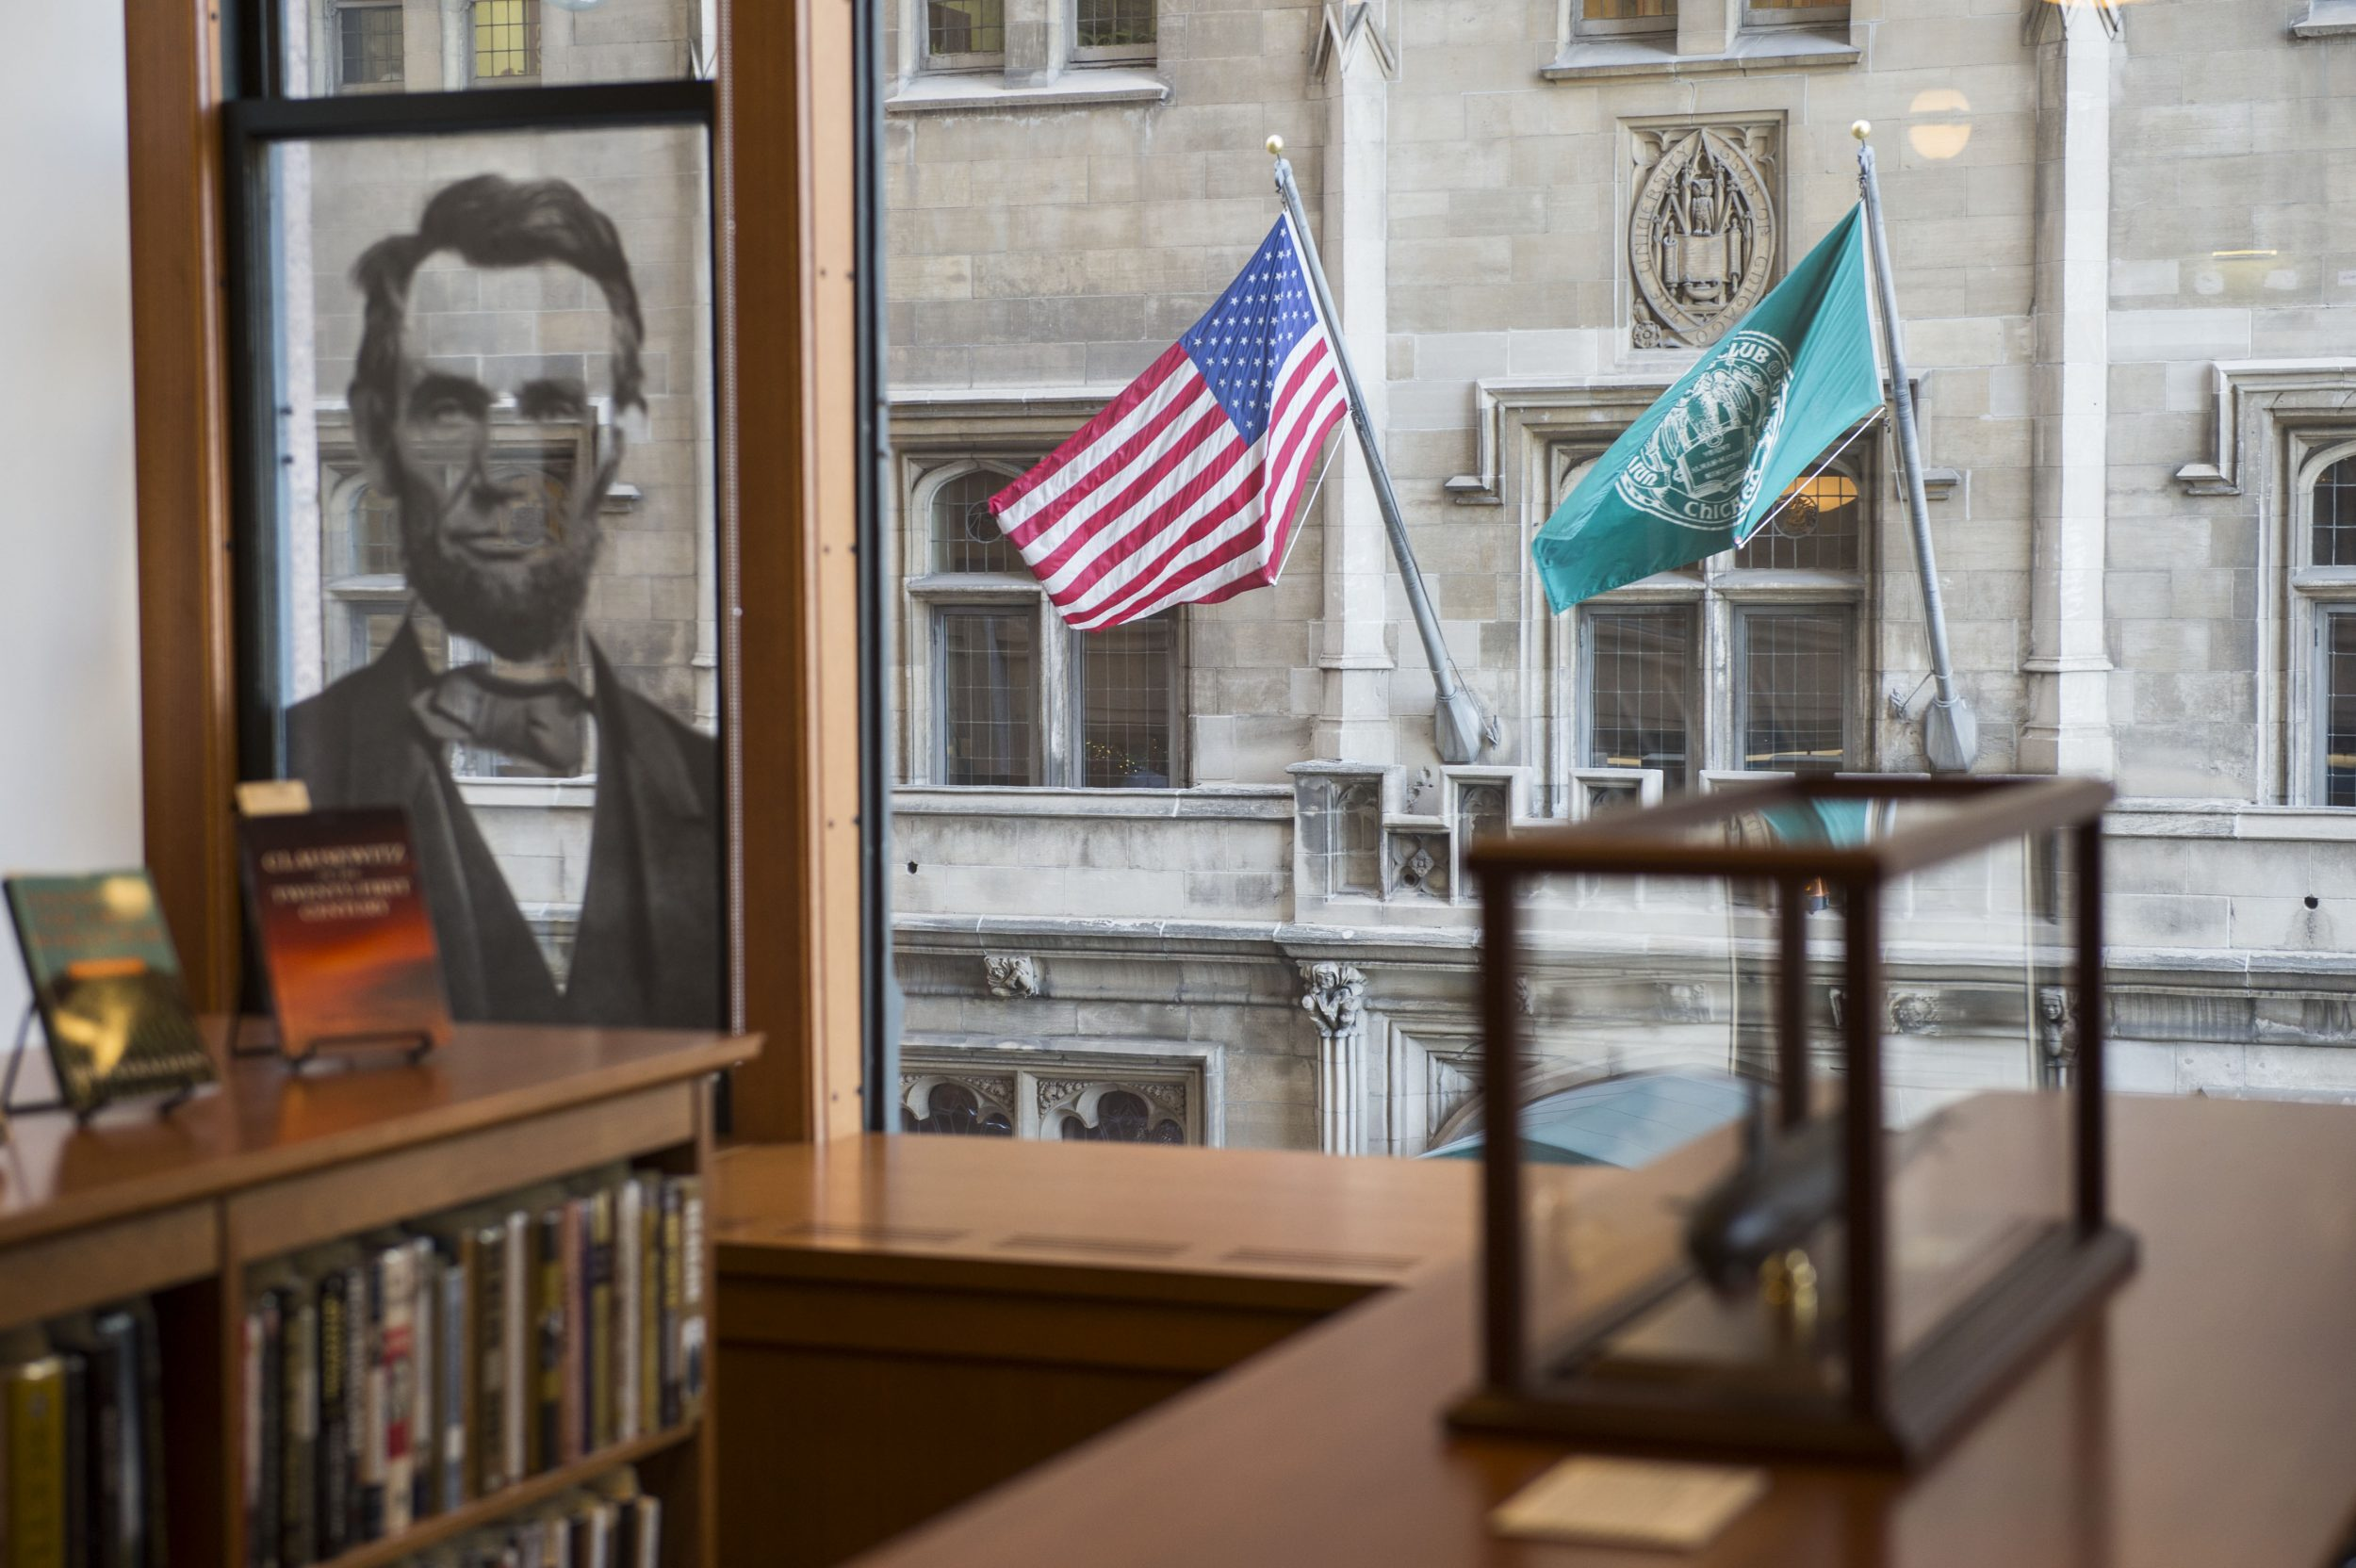 Pritzker military museum and library Chicago